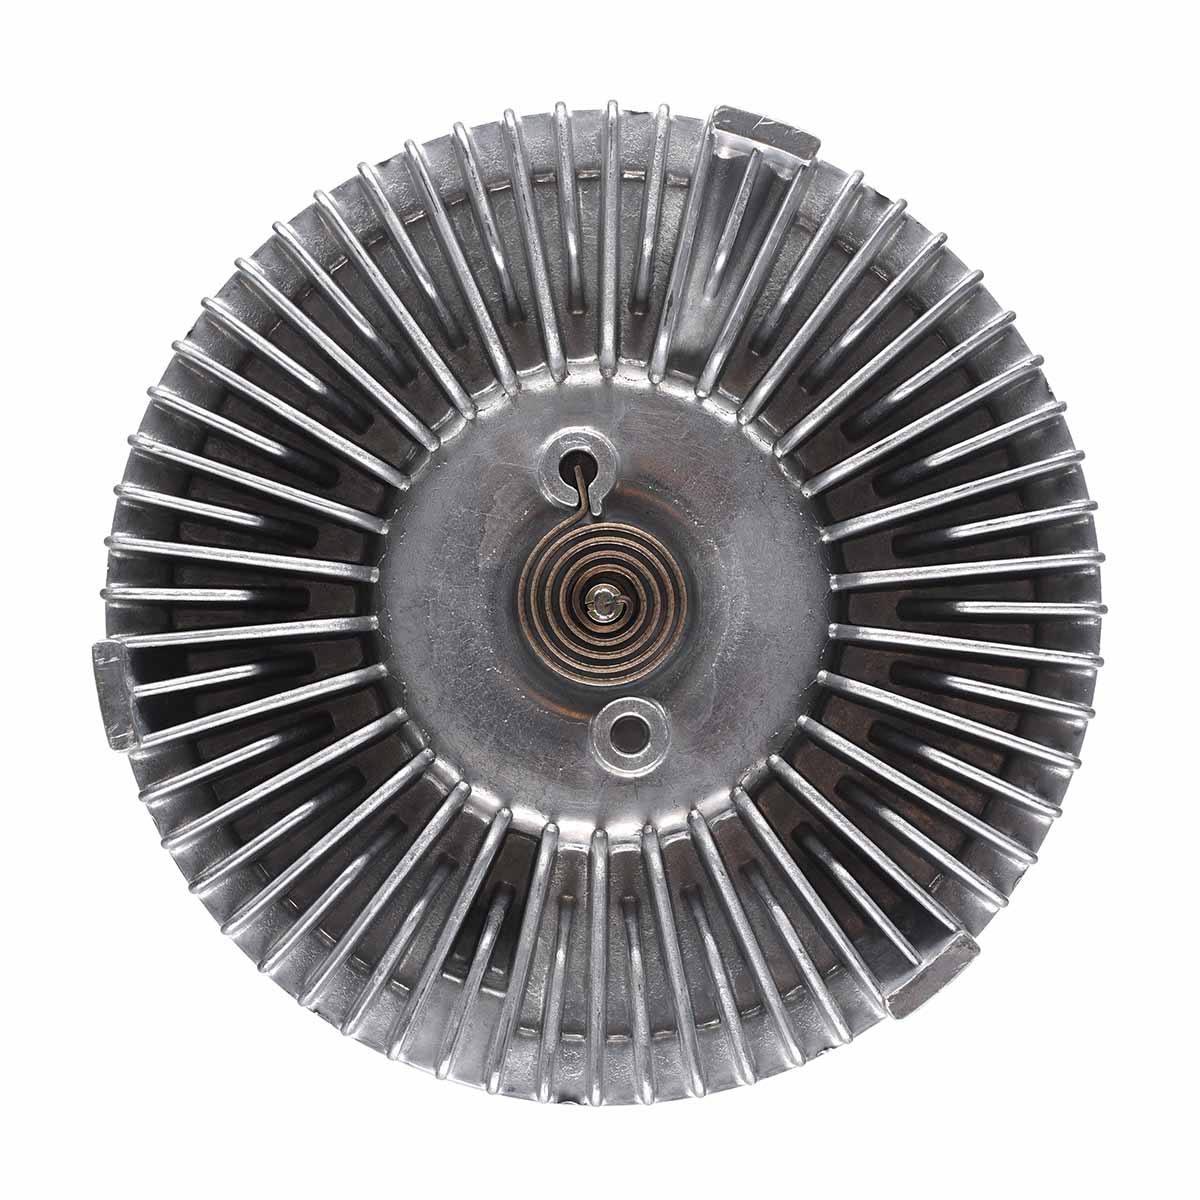 small resolution of cooling fan clutch for ford crown victoria grand marquis lincoln town car mercury grand marquis 4 6l f6az8a616aa 2795 in fans kits from automobiles